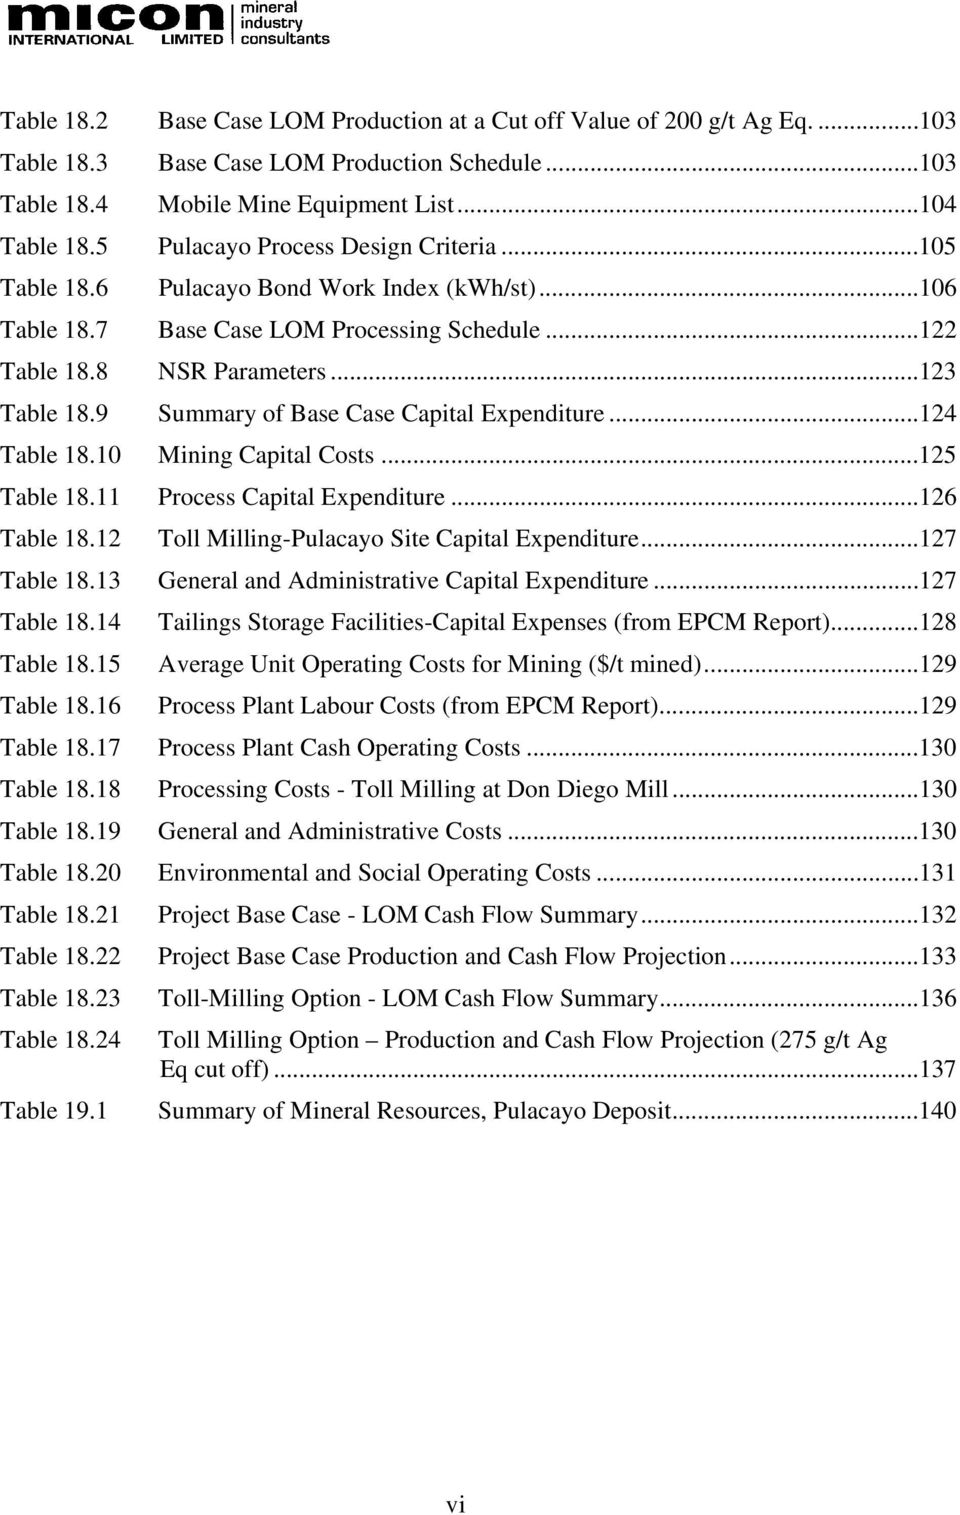 9 Summary of Base Case Capital Expenditure...124 Table 18.10 Mining Capital Costs...125 Table 18.11 Process Capital Expenditure...126 Table 18.12 Toll Milling-Pulacayo Site Capital Expenditure.